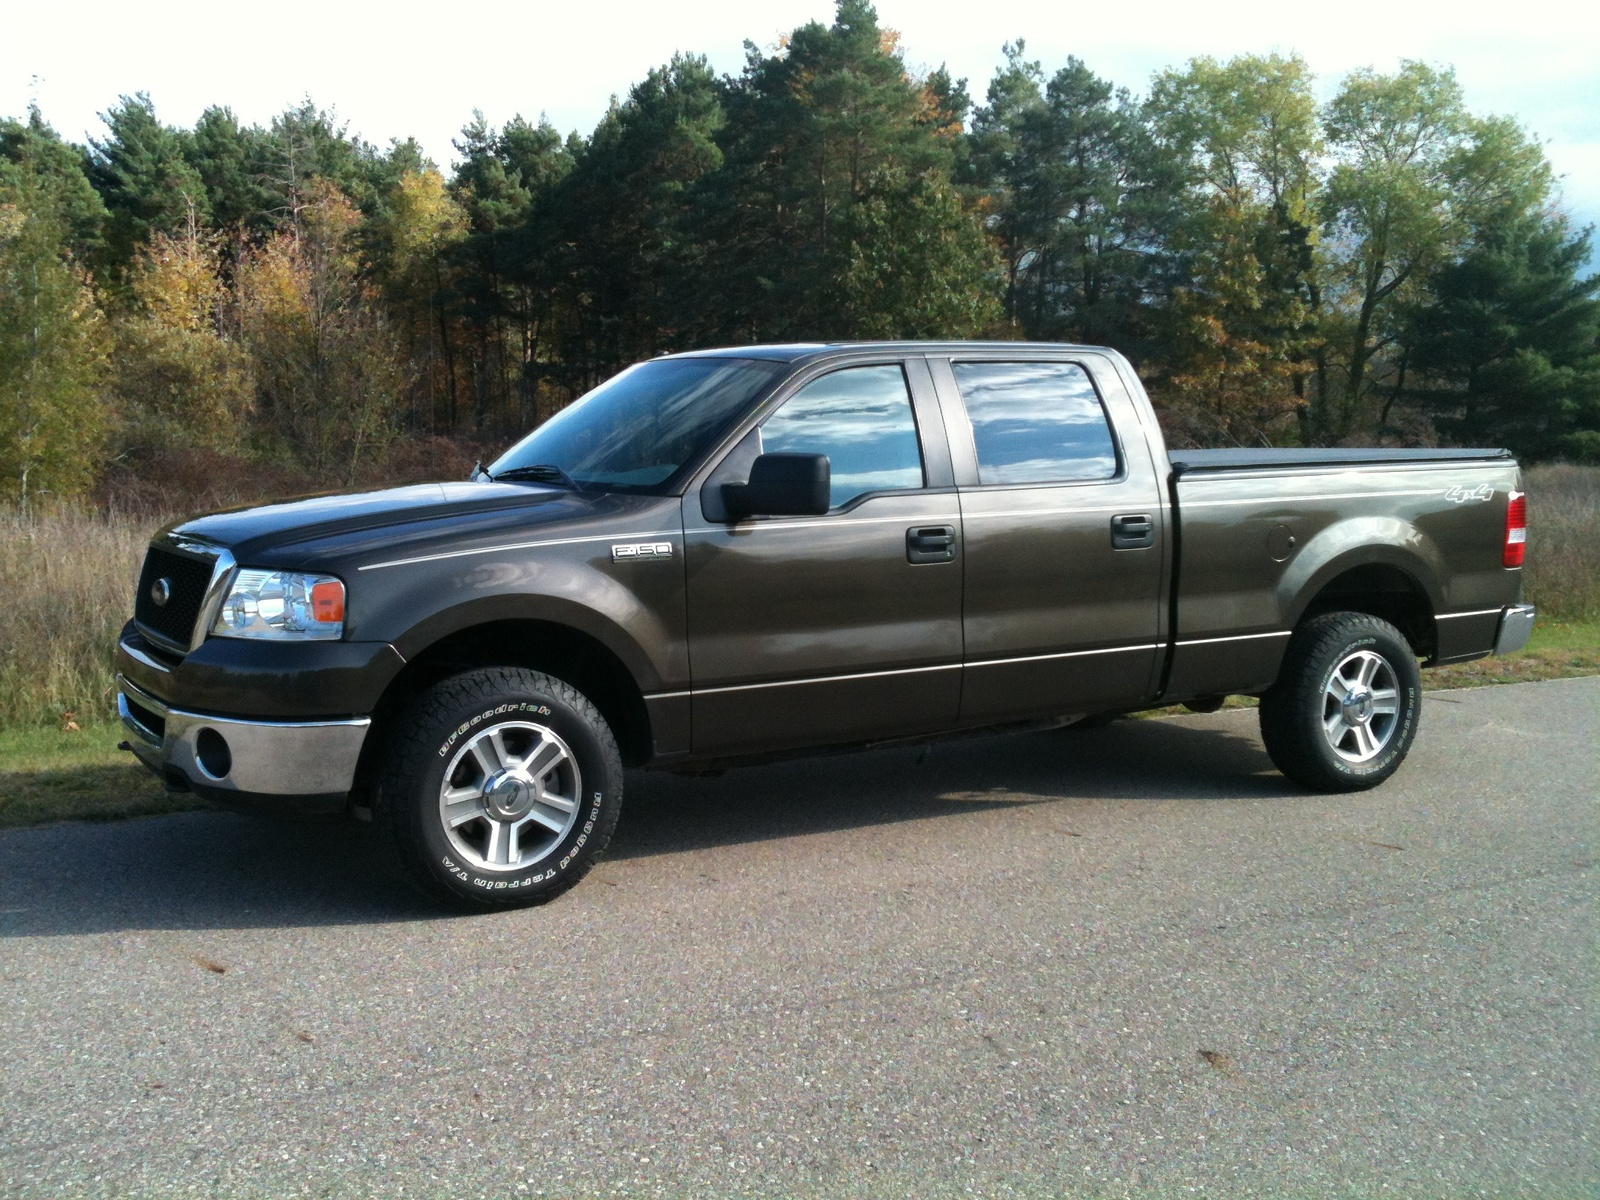 2008 Ford F 150 Pictures C10427 pi36687777 furthermore Chipdisplay likewise 2016 Baja F 150 740hp Raptor Killer furthermore 2002 Ford F150 Regular Cab further 1302tr Elegance Is Only A Stich Away Custom Interior. on 2003 harley f150 interior